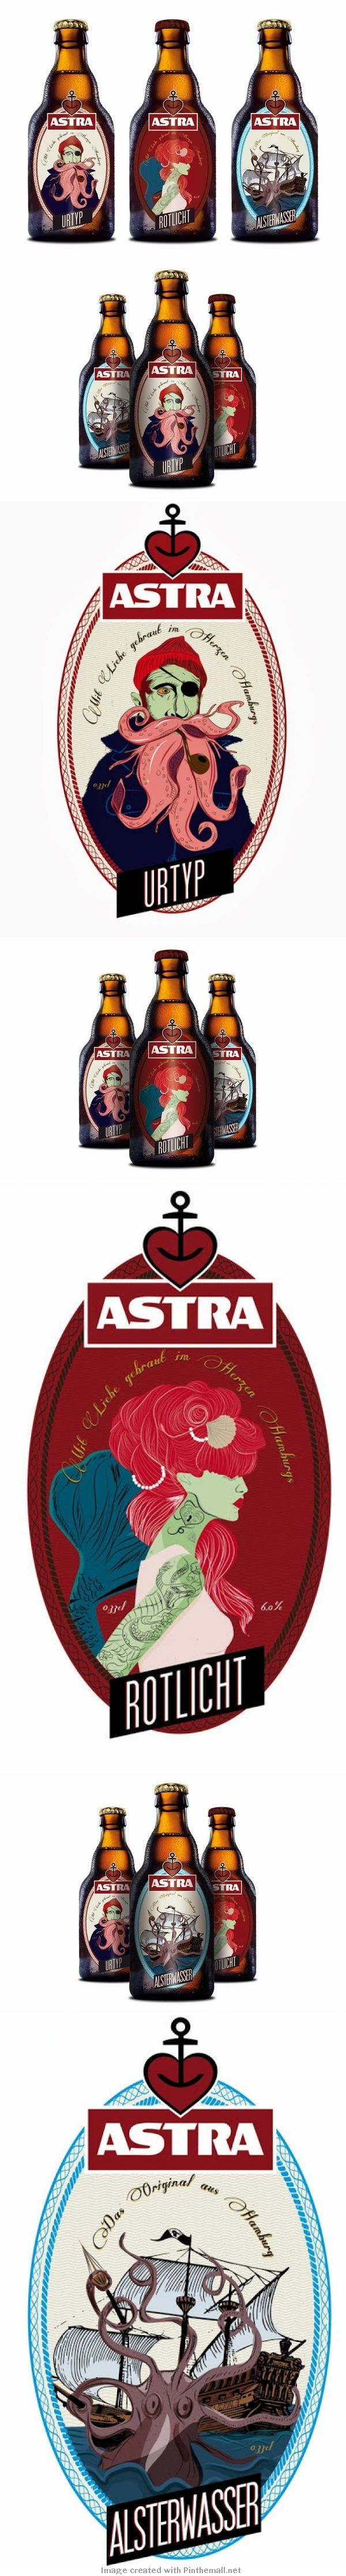 Astra Beer (Concept)